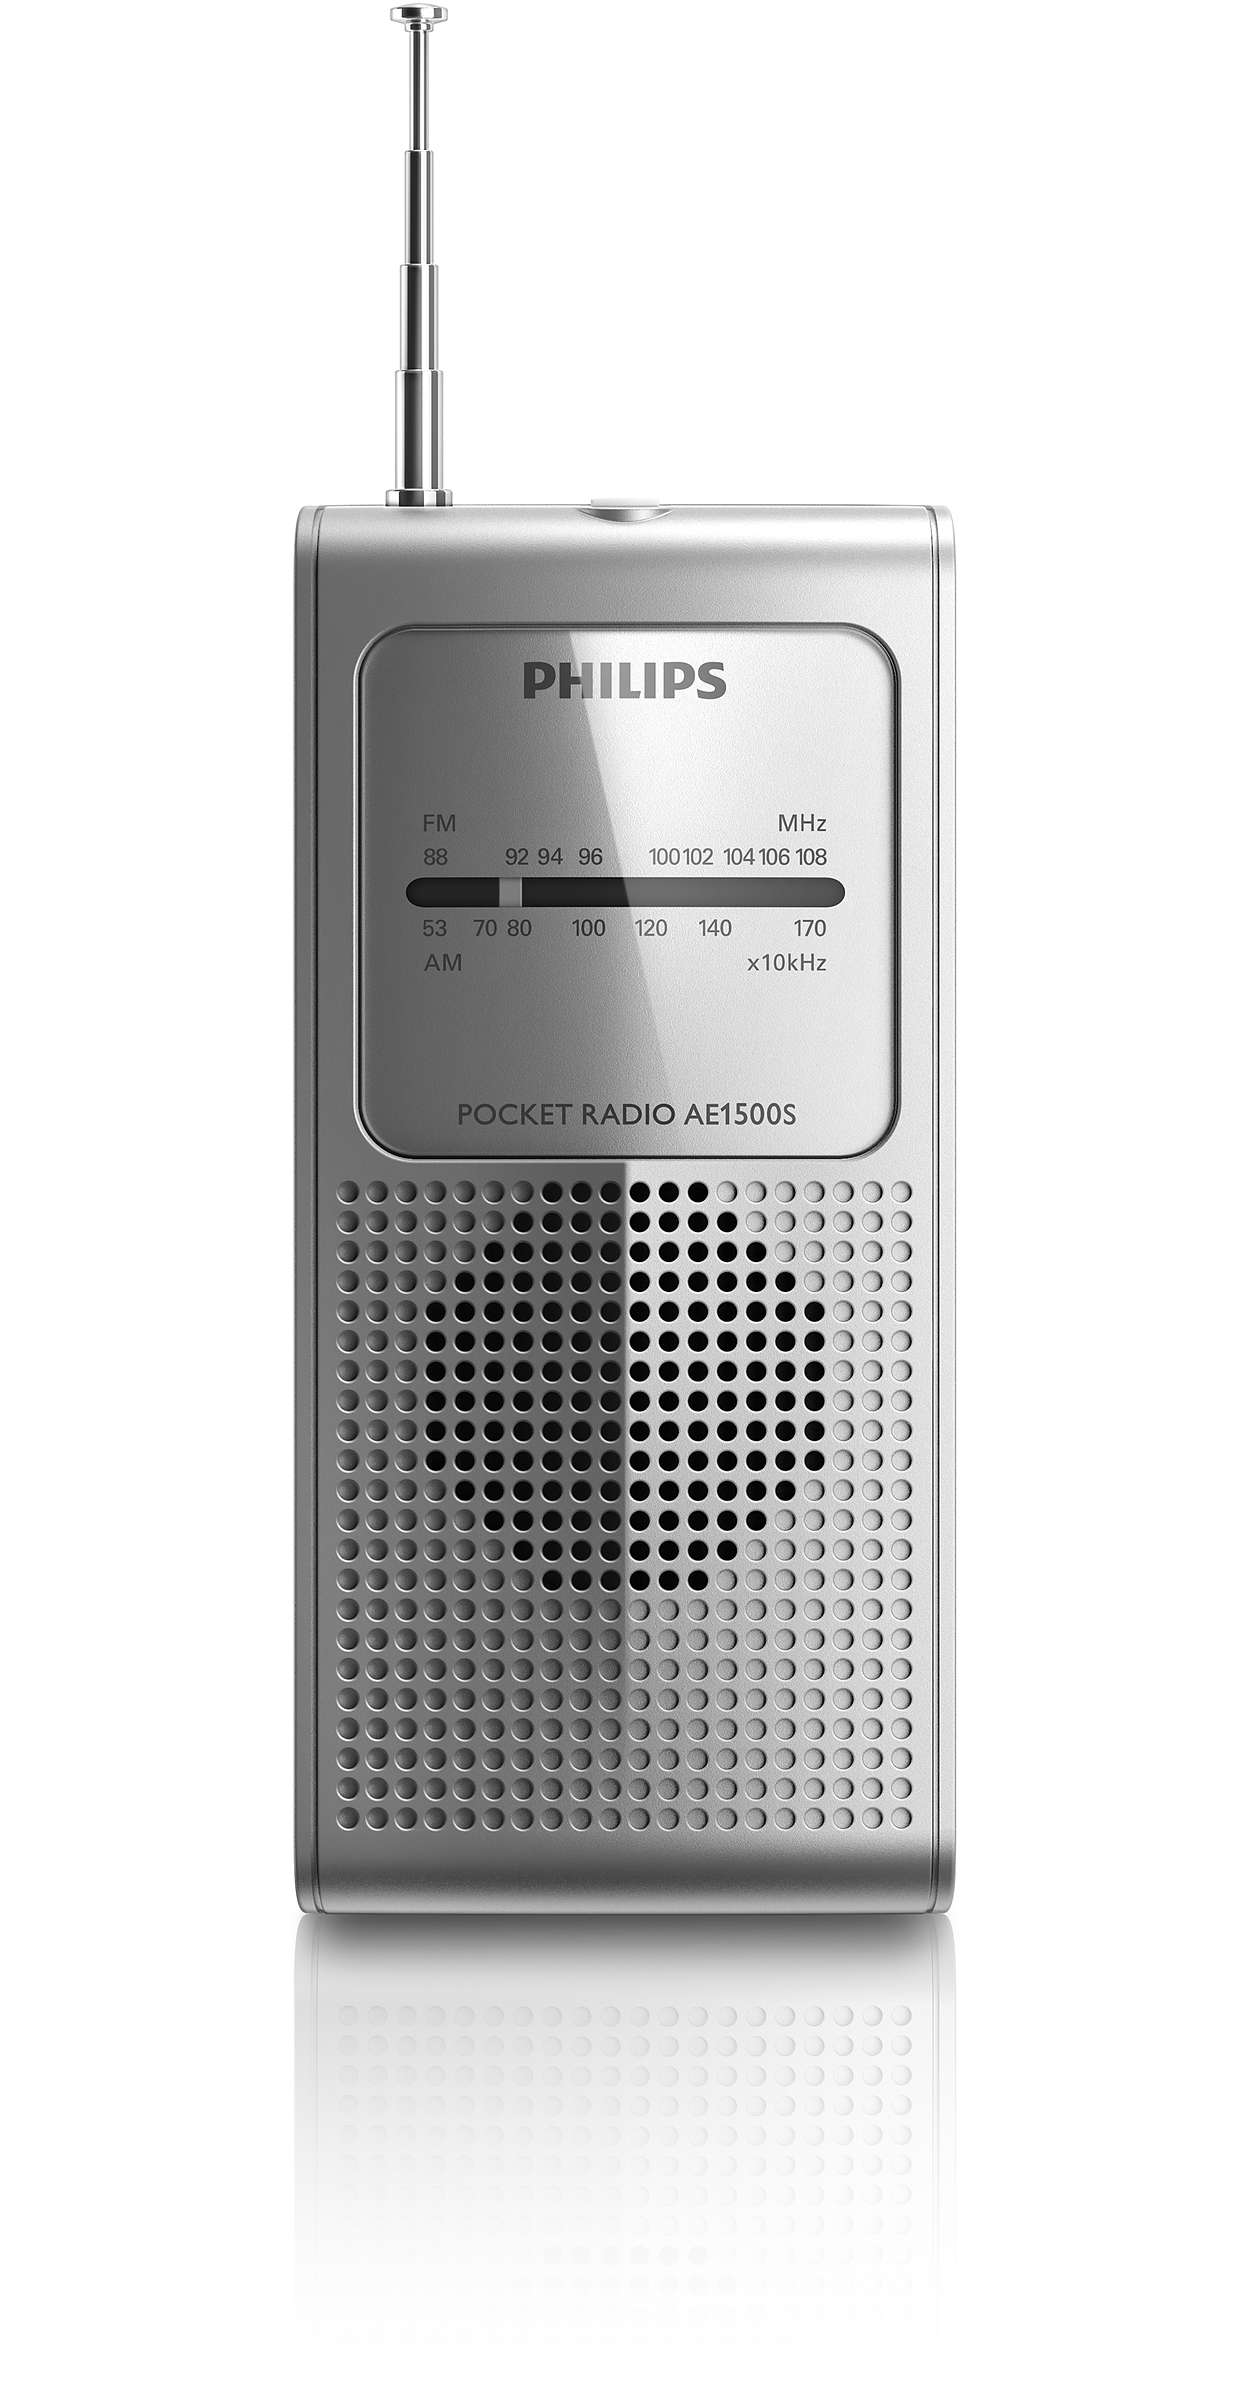 Reviews Of The Portable Radio Ae1500s 37 Philips